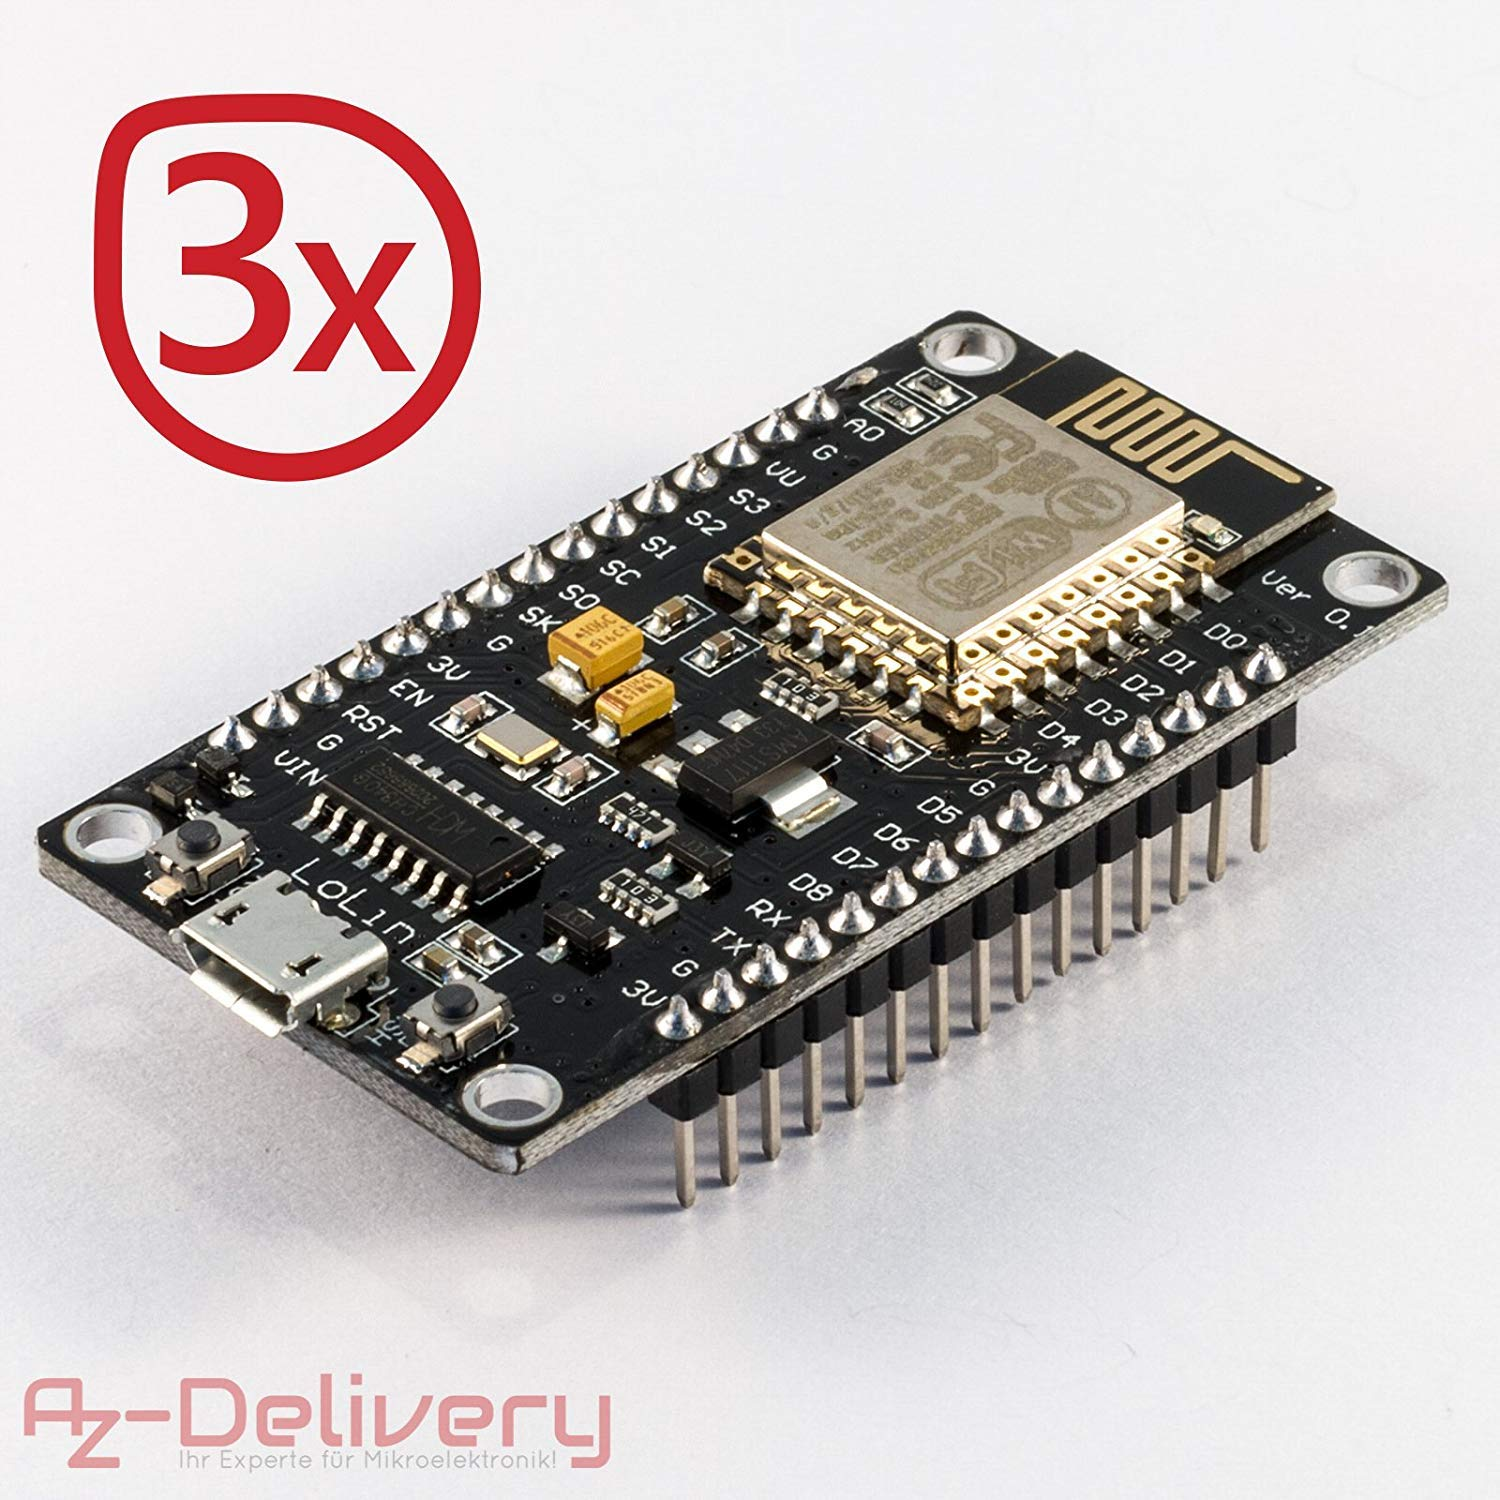 AZDelivery ⭐⭐⭐⭐⭐ NodeMcu WiFi Lua Lolin V3 ESP8266 ESP-12E Development  Board with CH340 Including Free eBook!